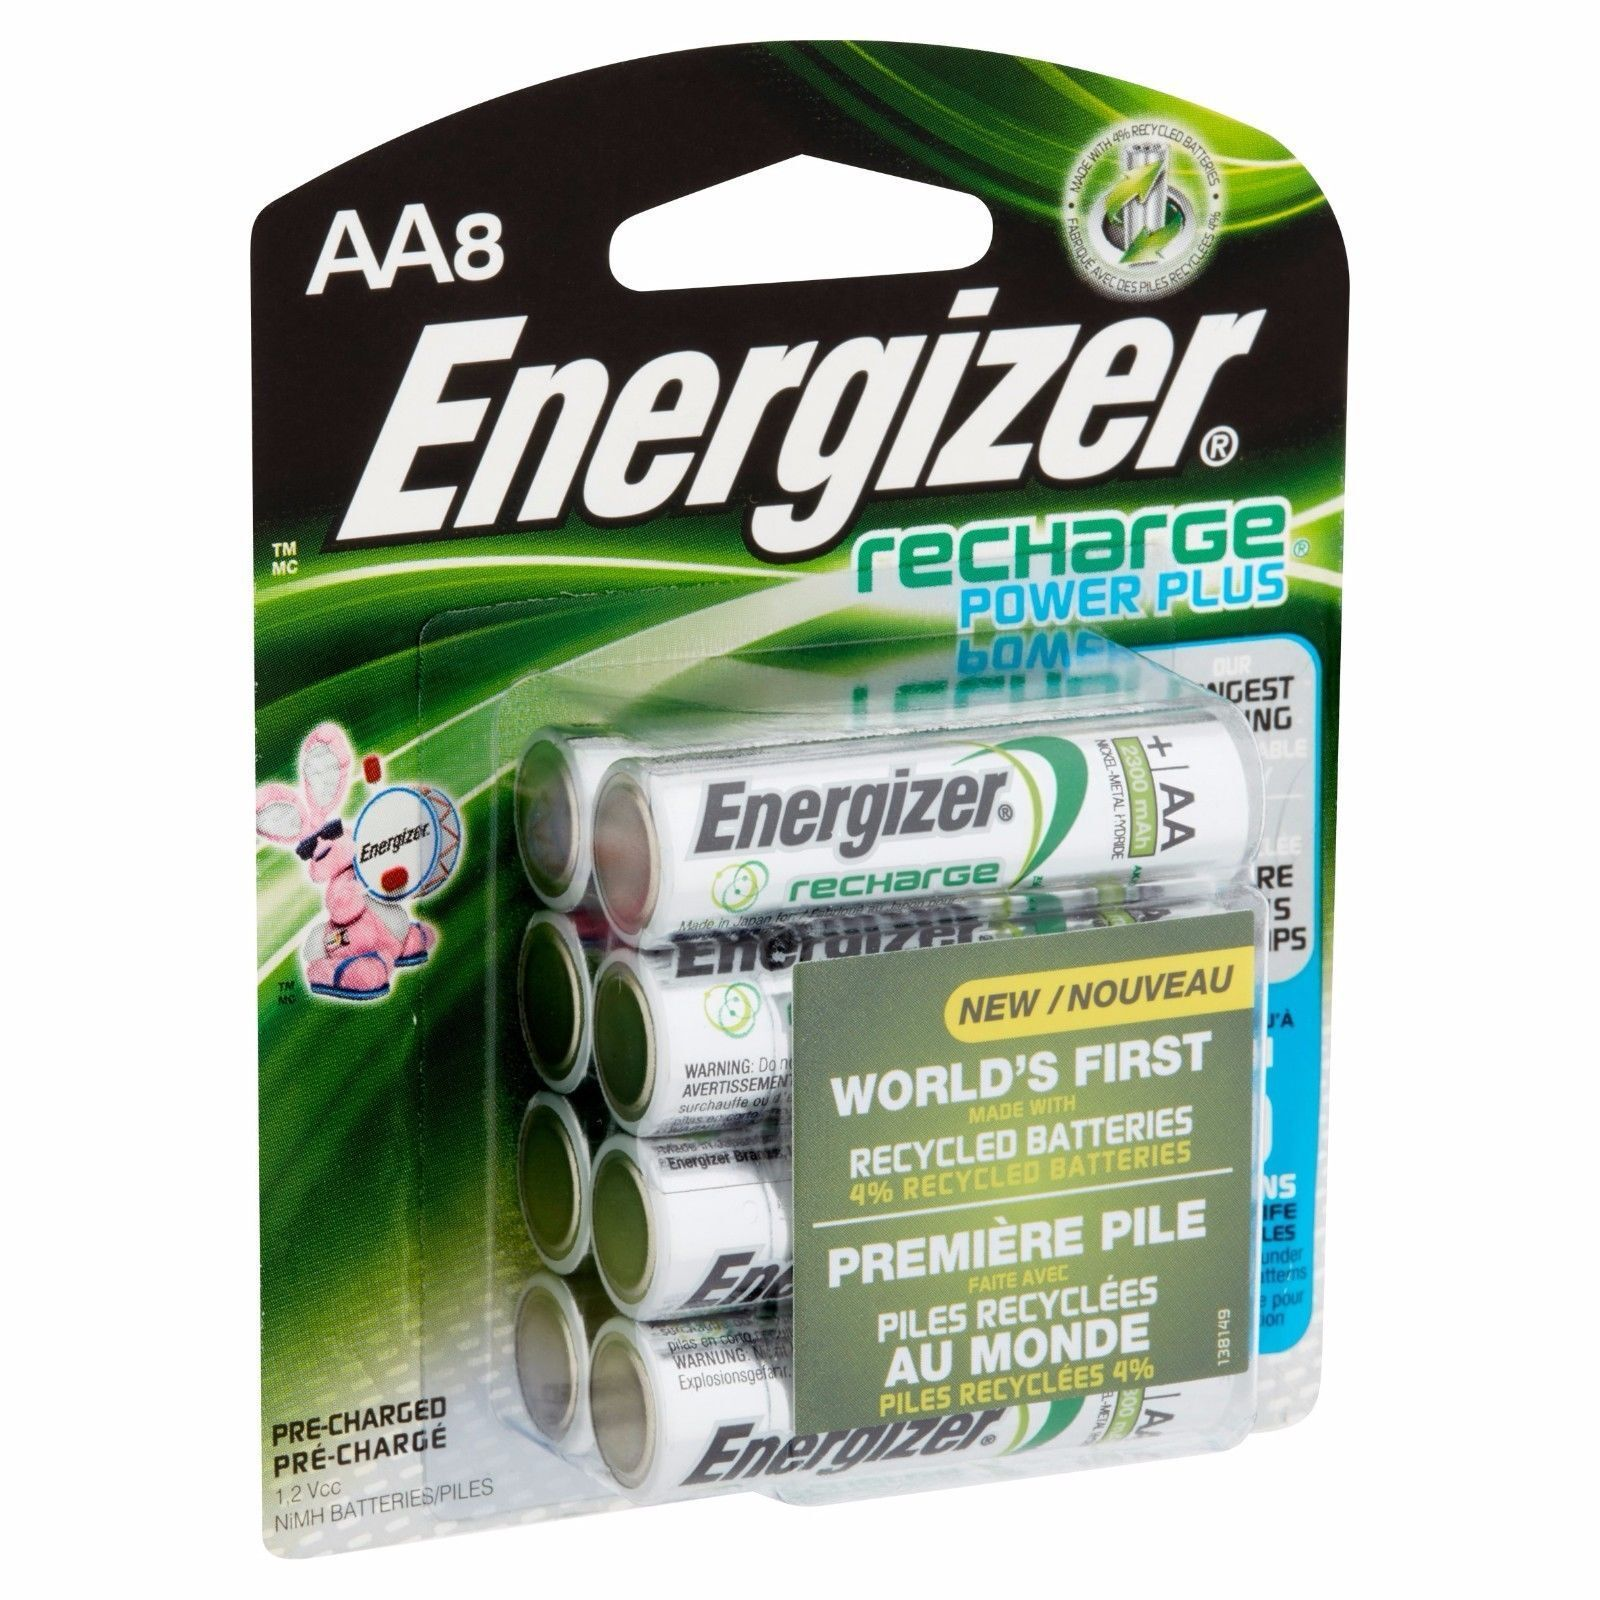 AA8 AA Energizer Rechargeable NiMH Batteries EXP 2021